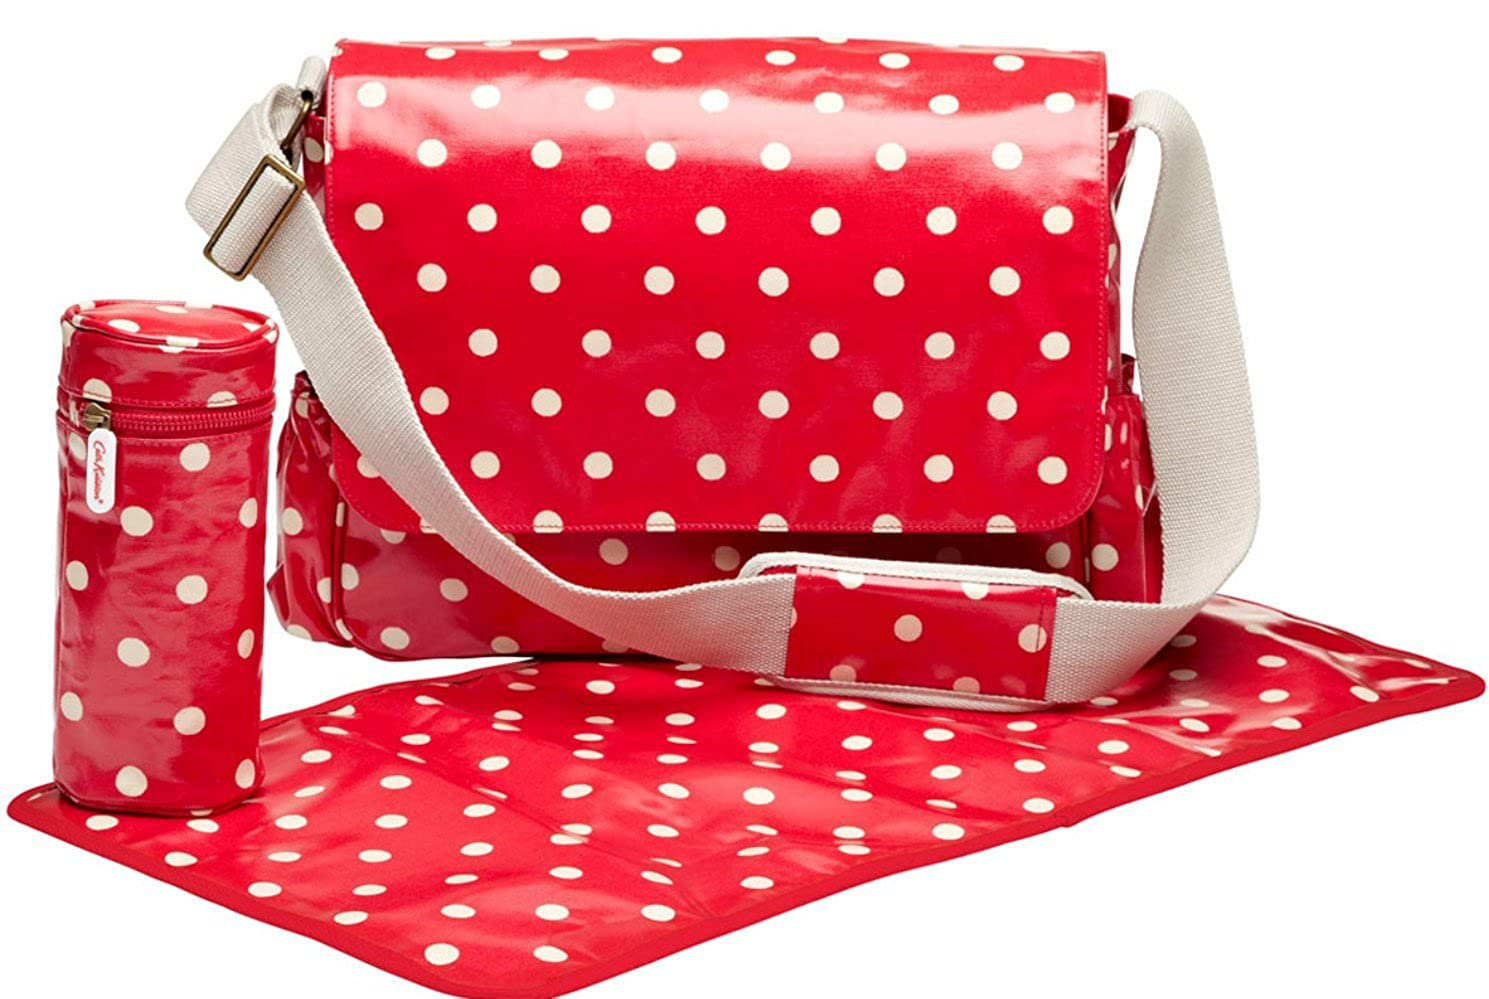 the sale of shoes hot-selling clearance find workmanship Cath Kidston New Oilcloth Poppy Red Spot Nappy Changing Bag £52.99